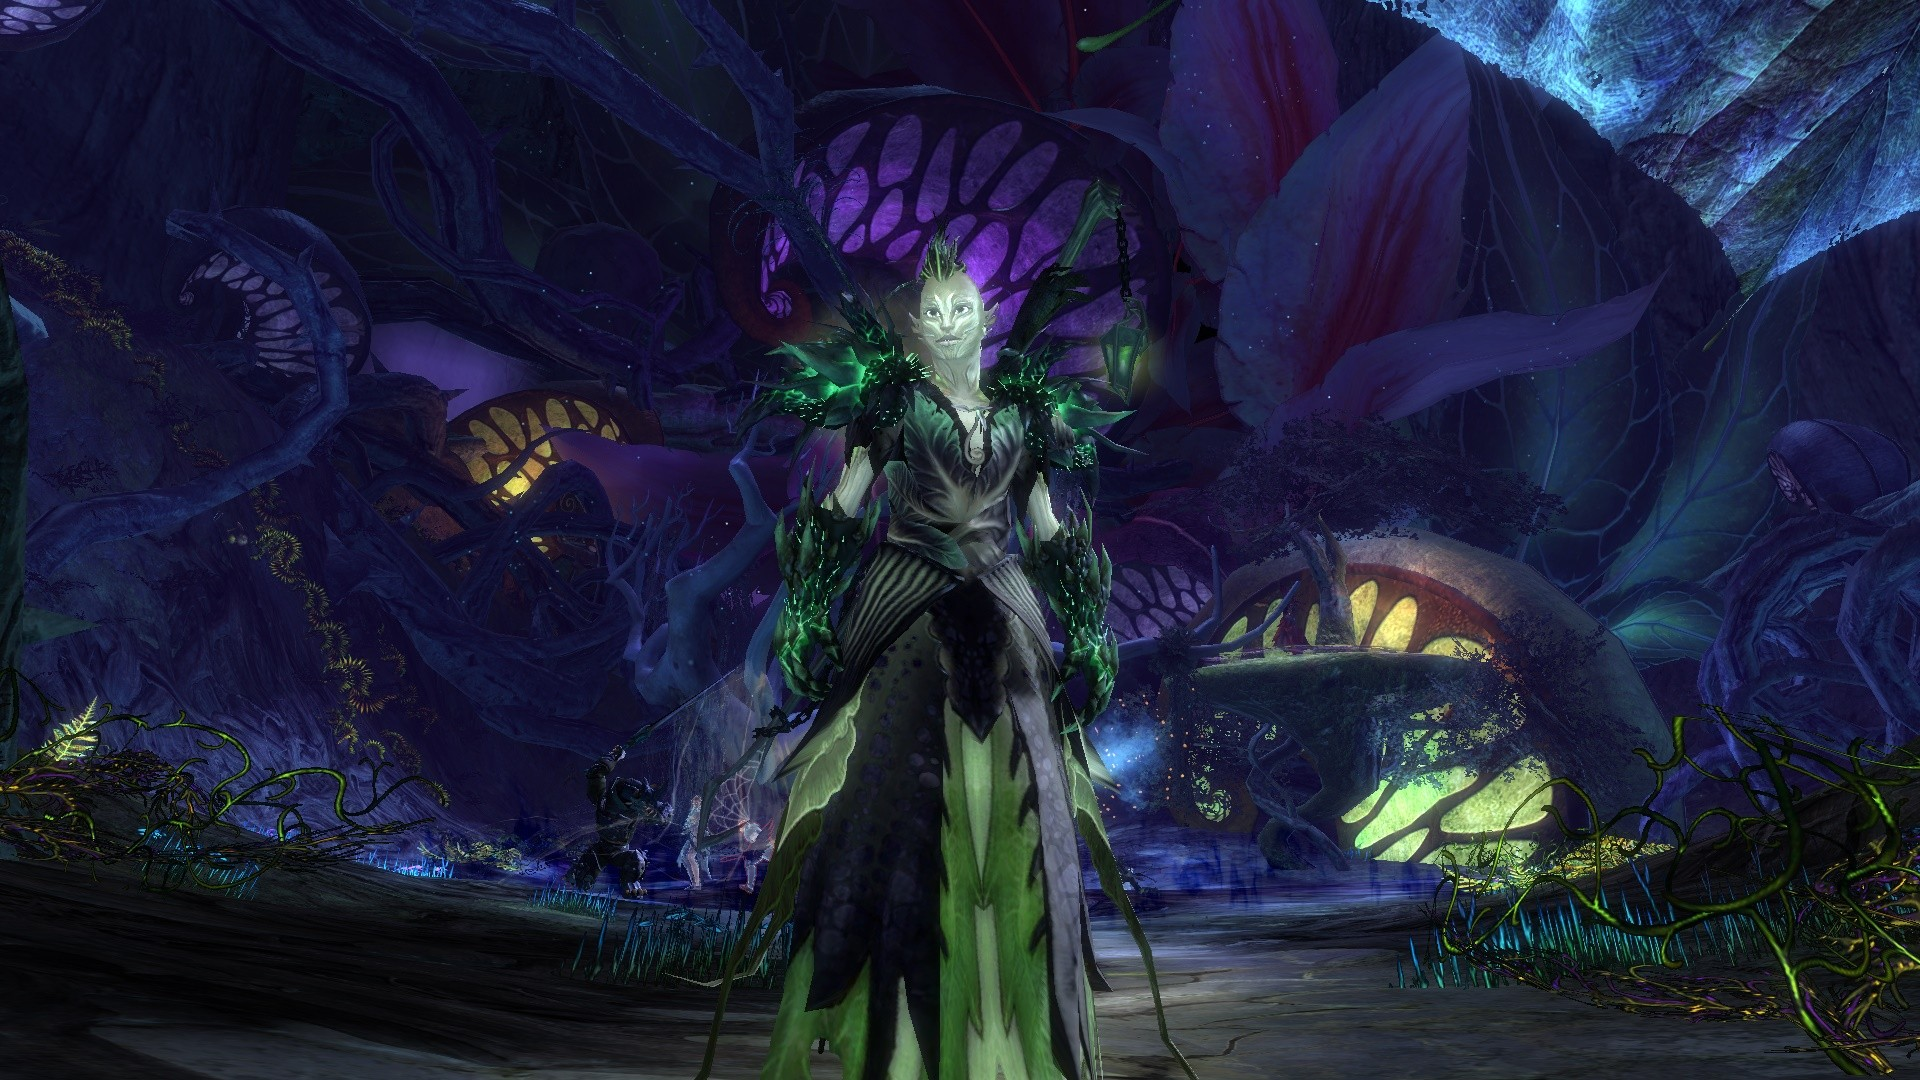 GW2 Sylvari never fail to amuse!